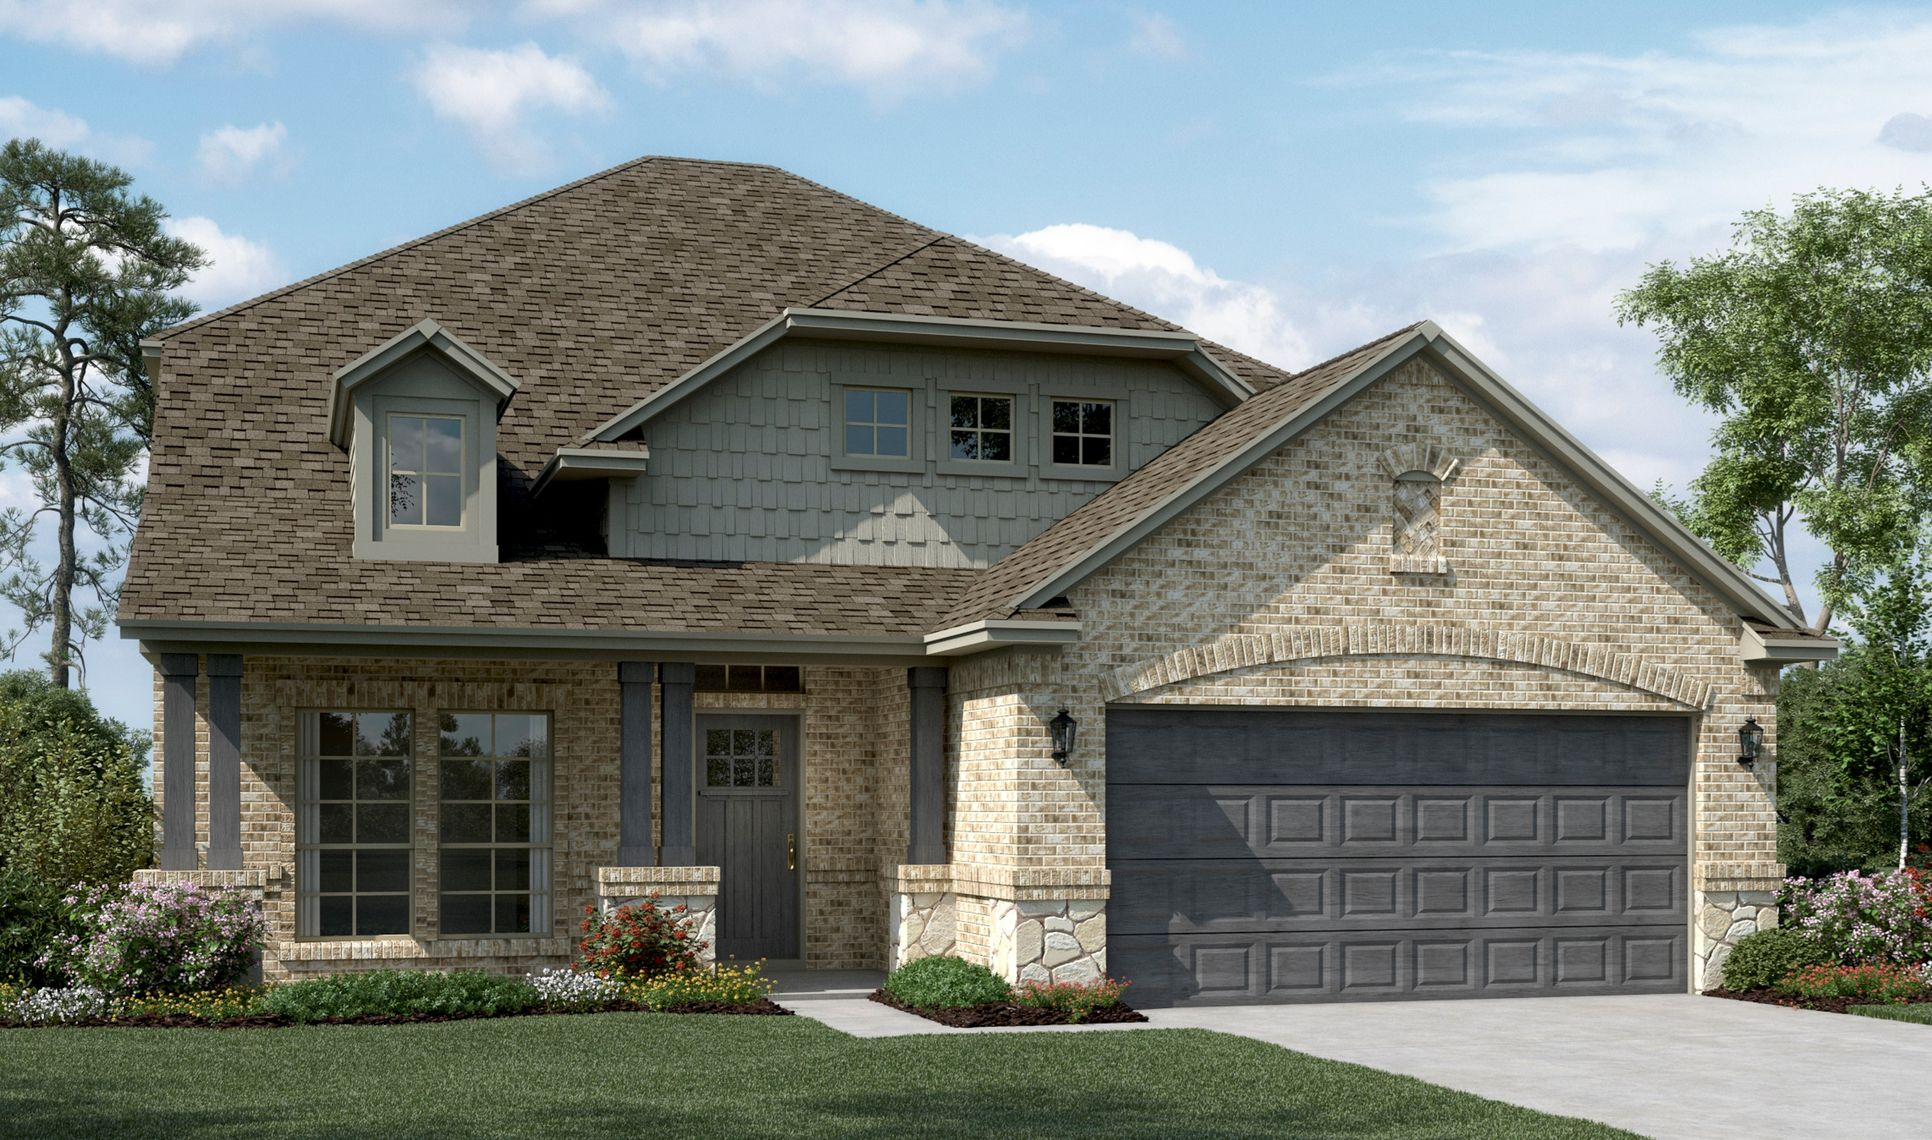 Exterior:Delaware II - C - Optional stone